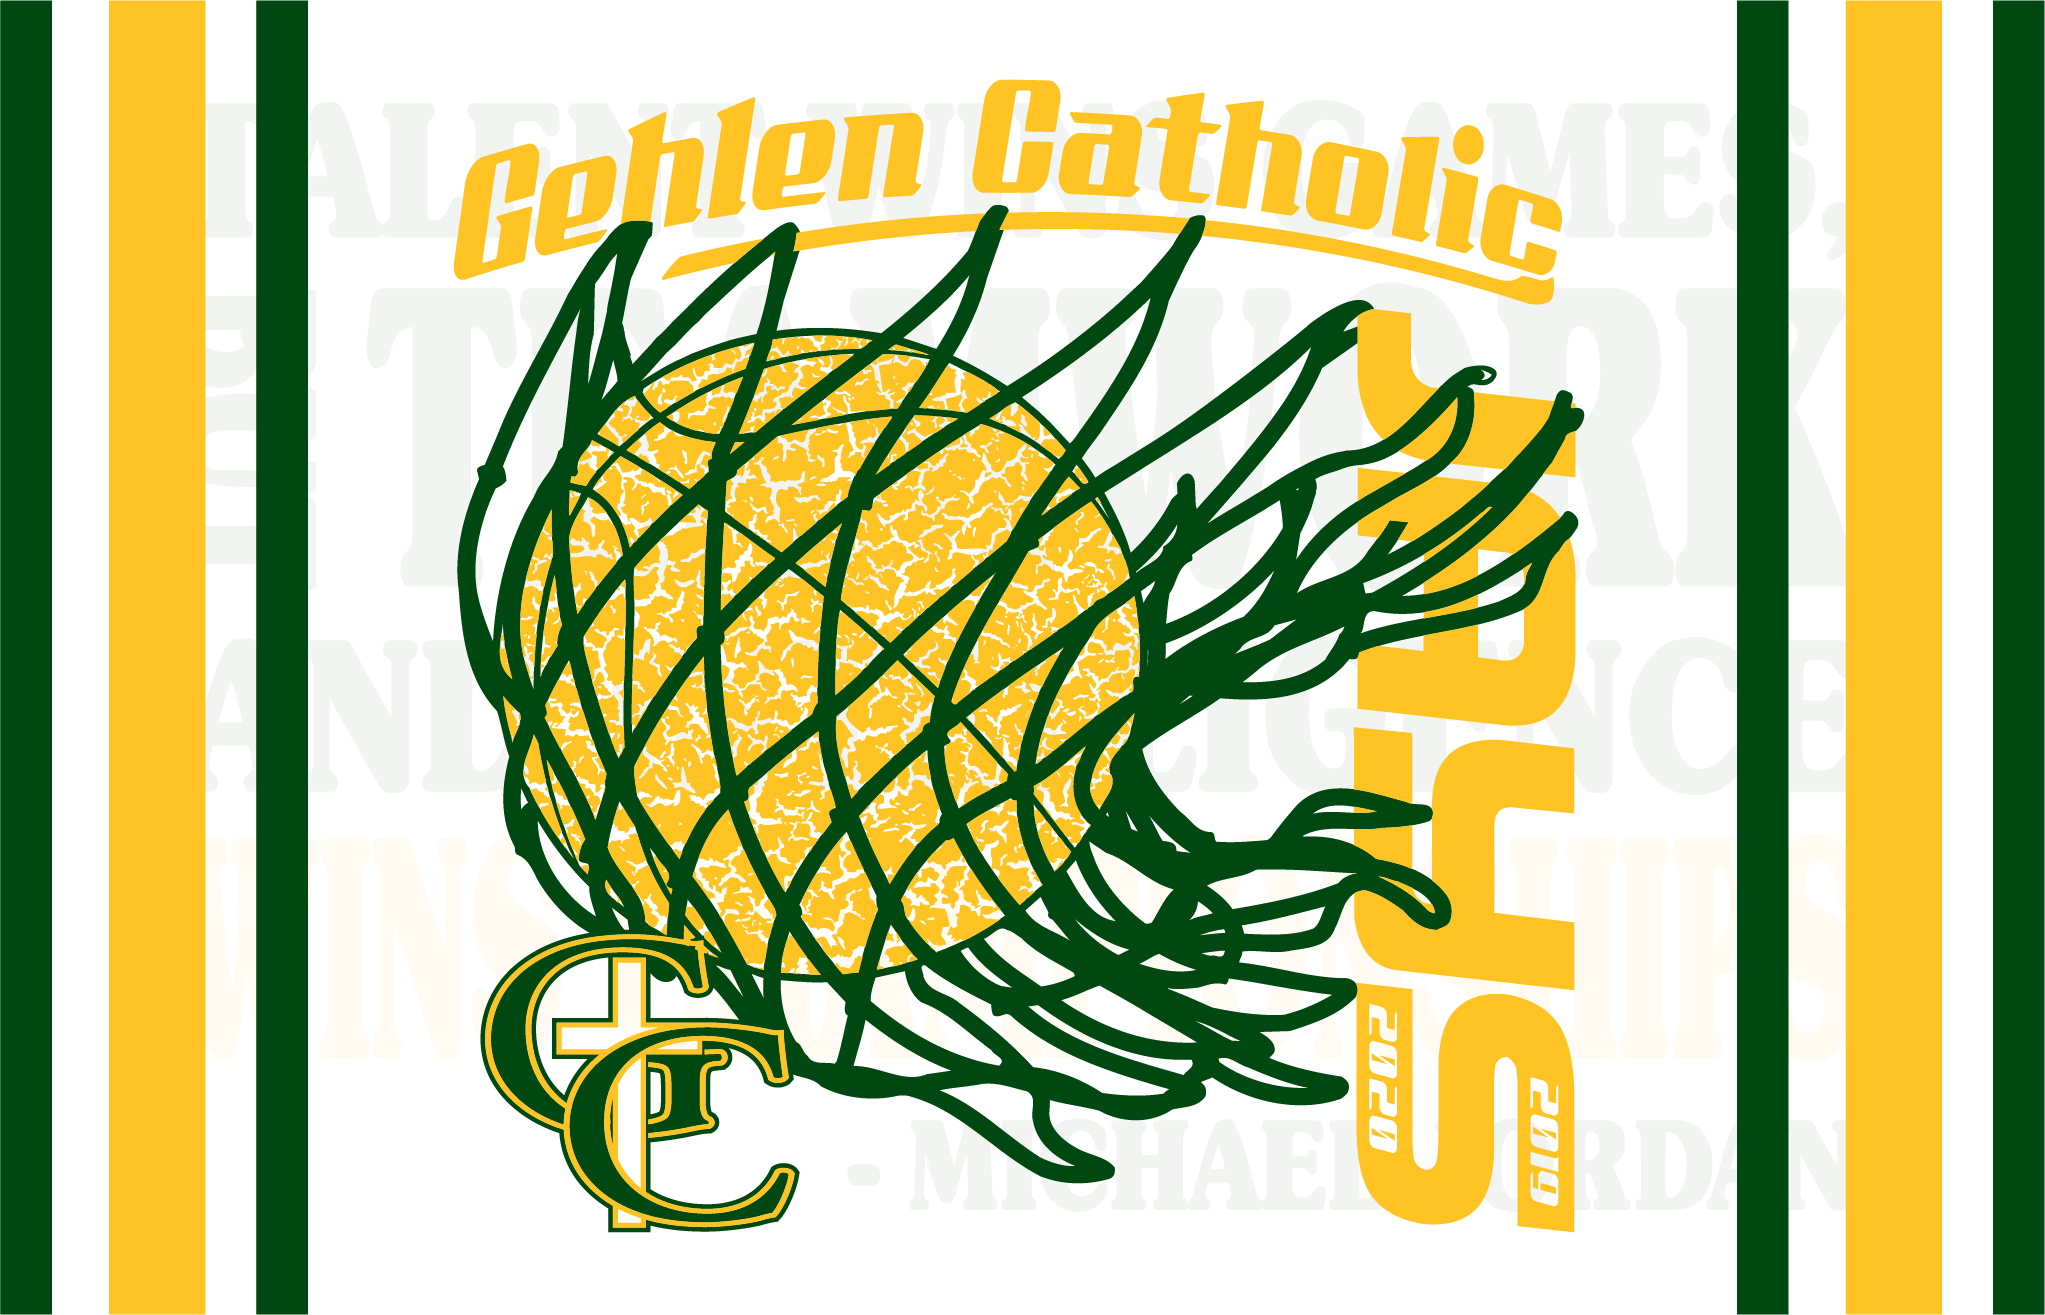 2019-20 Gehlen Basketball